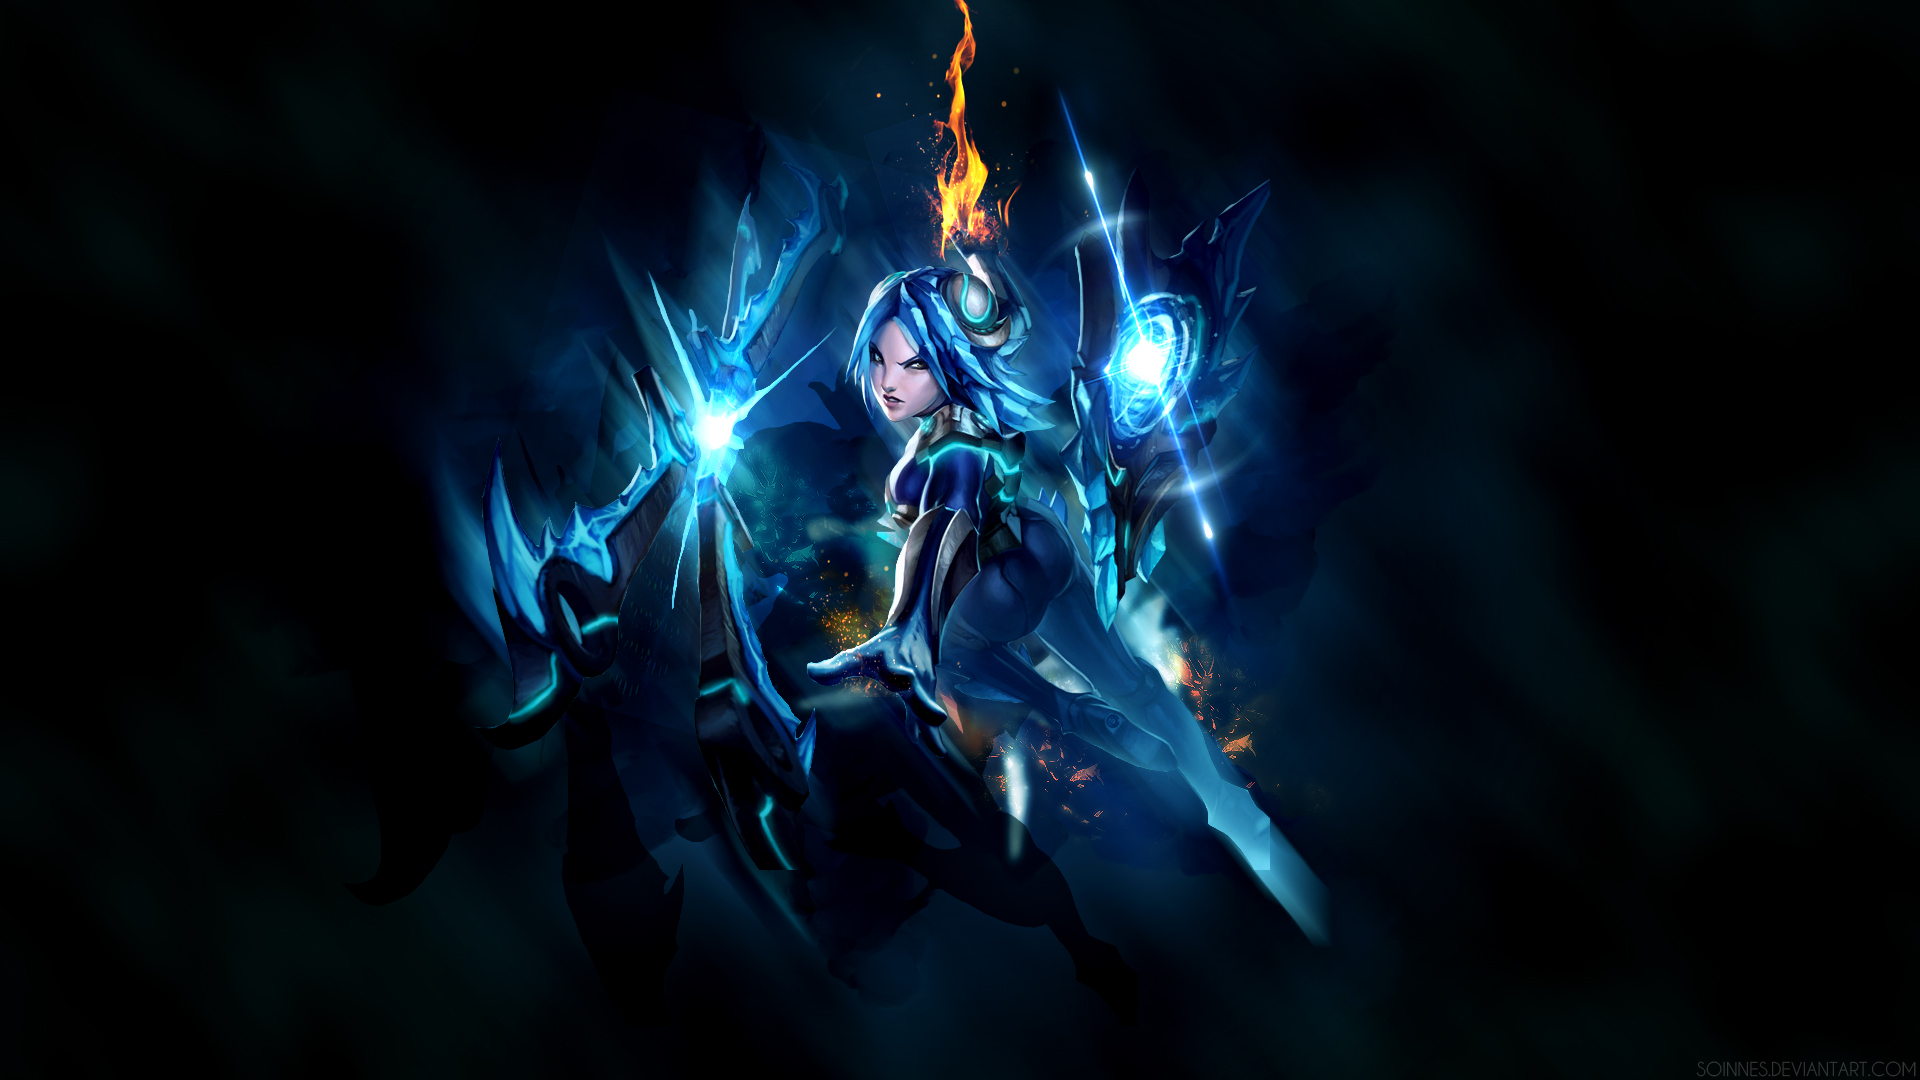 League Of Legends Irelia Wallpaper By Soinnes On Deviantart